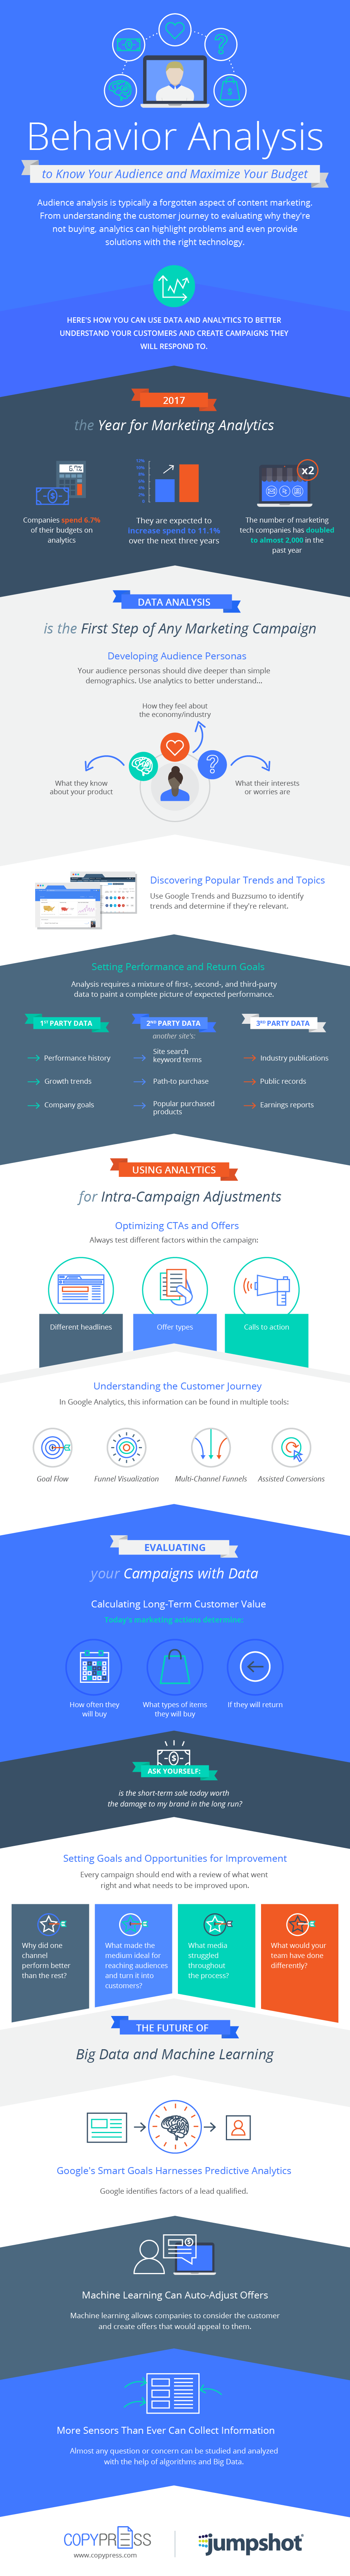 How Behavior Analysis Can Help You Increase Marketing ROI - #Infographic